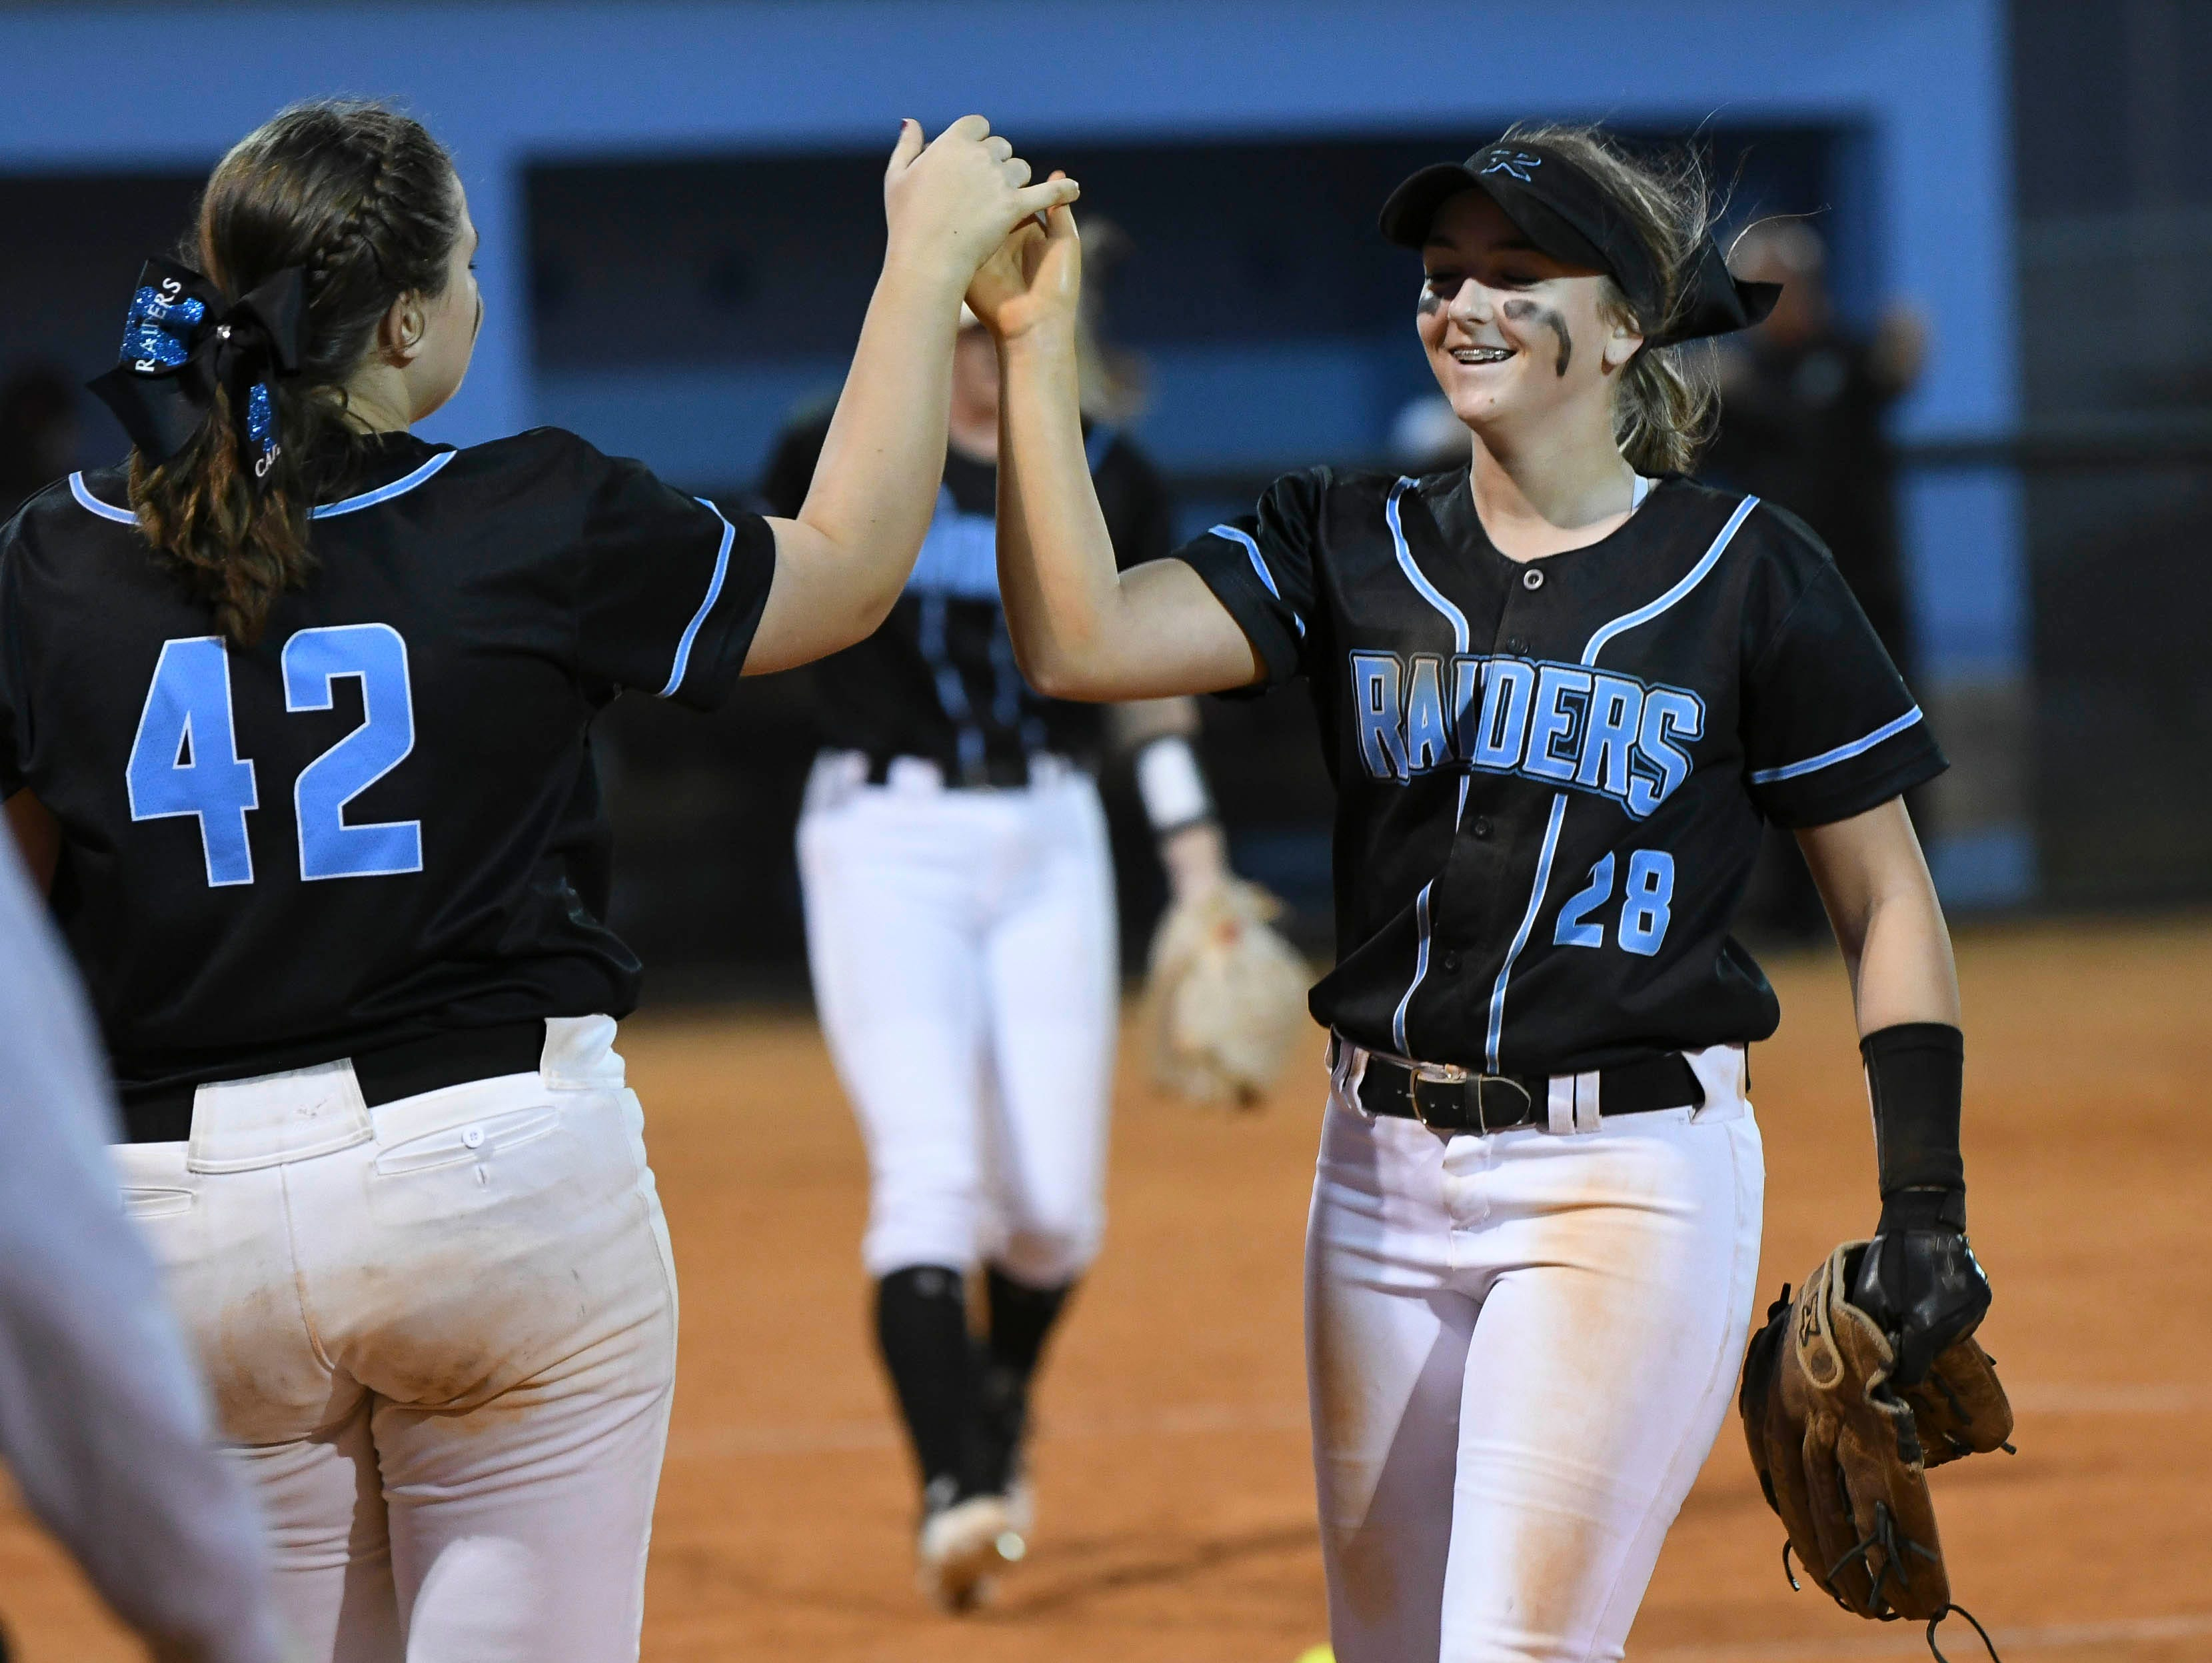 Caitlyn Tuttle highs-fives teammate Emily Thomas during Wednesday's game against aA